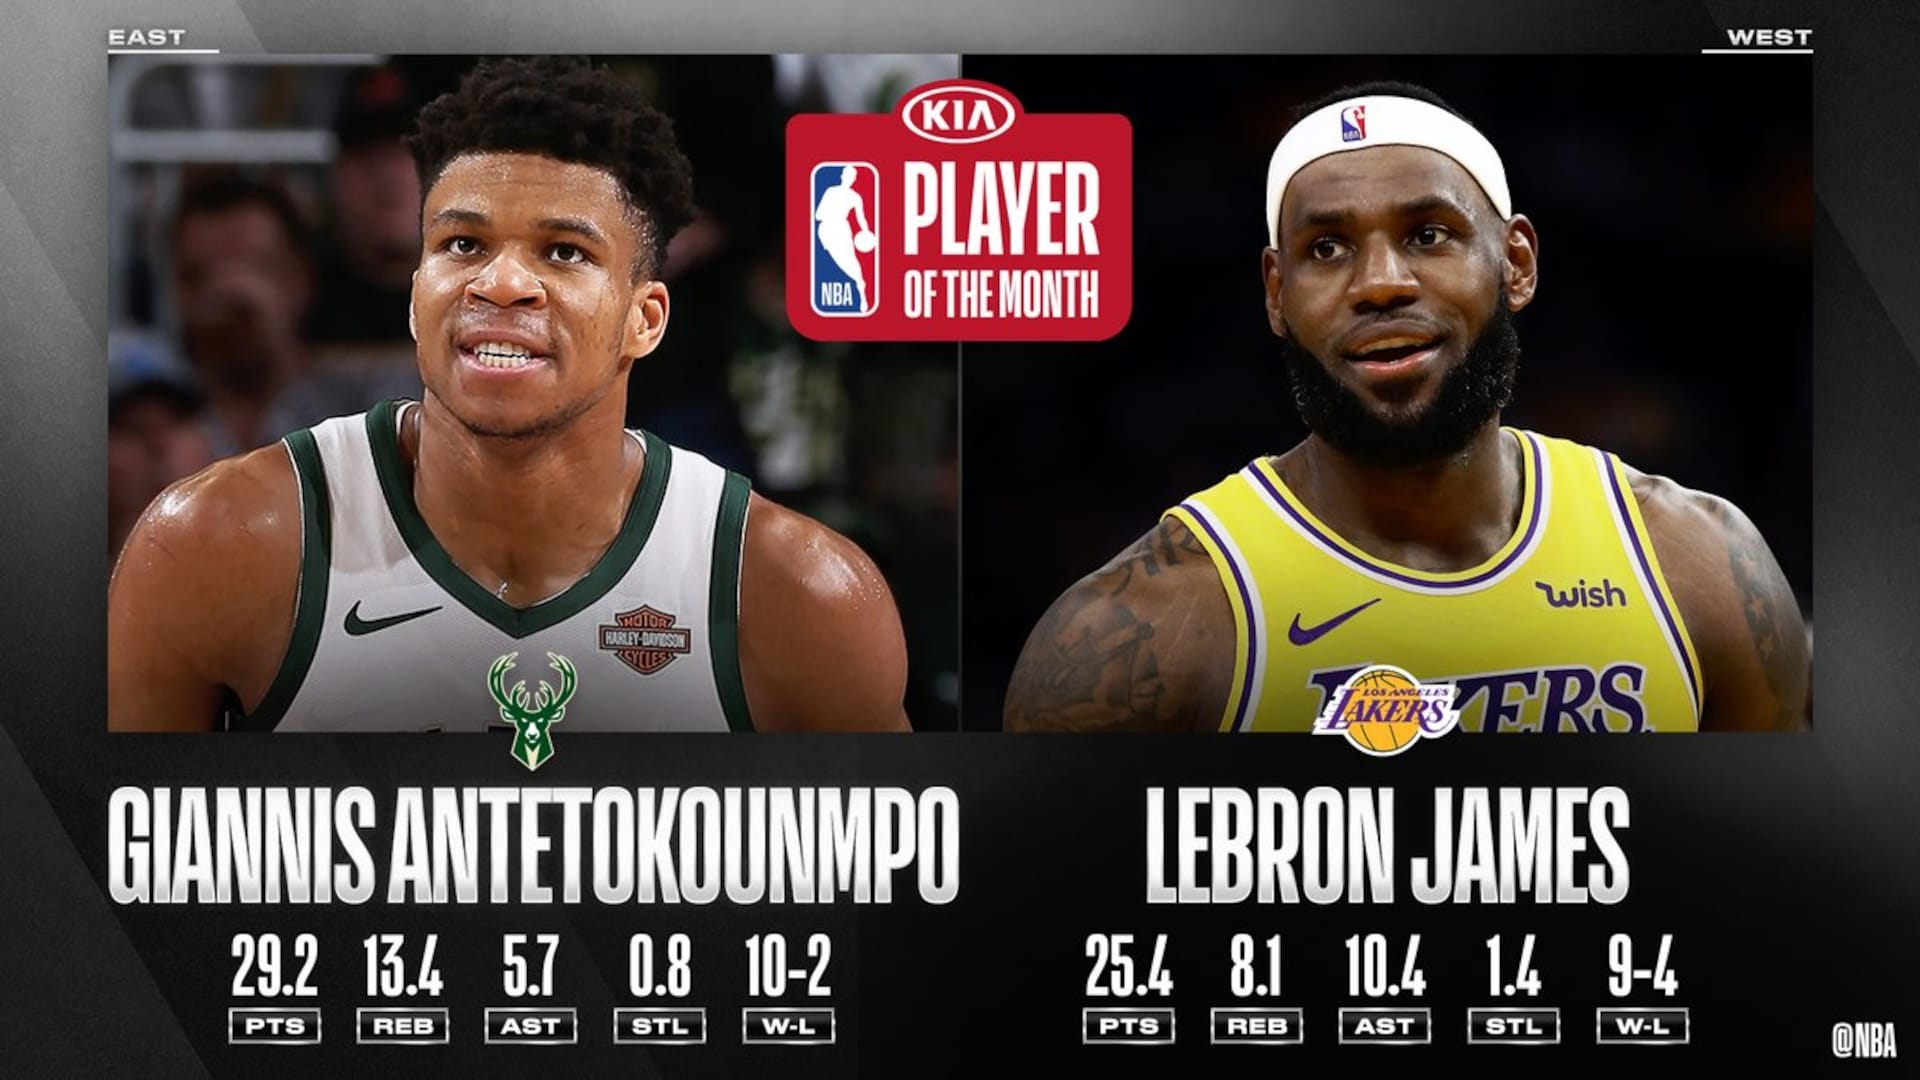 Giannis Antetokounmpo, LeBron James named Kia Players of the Month